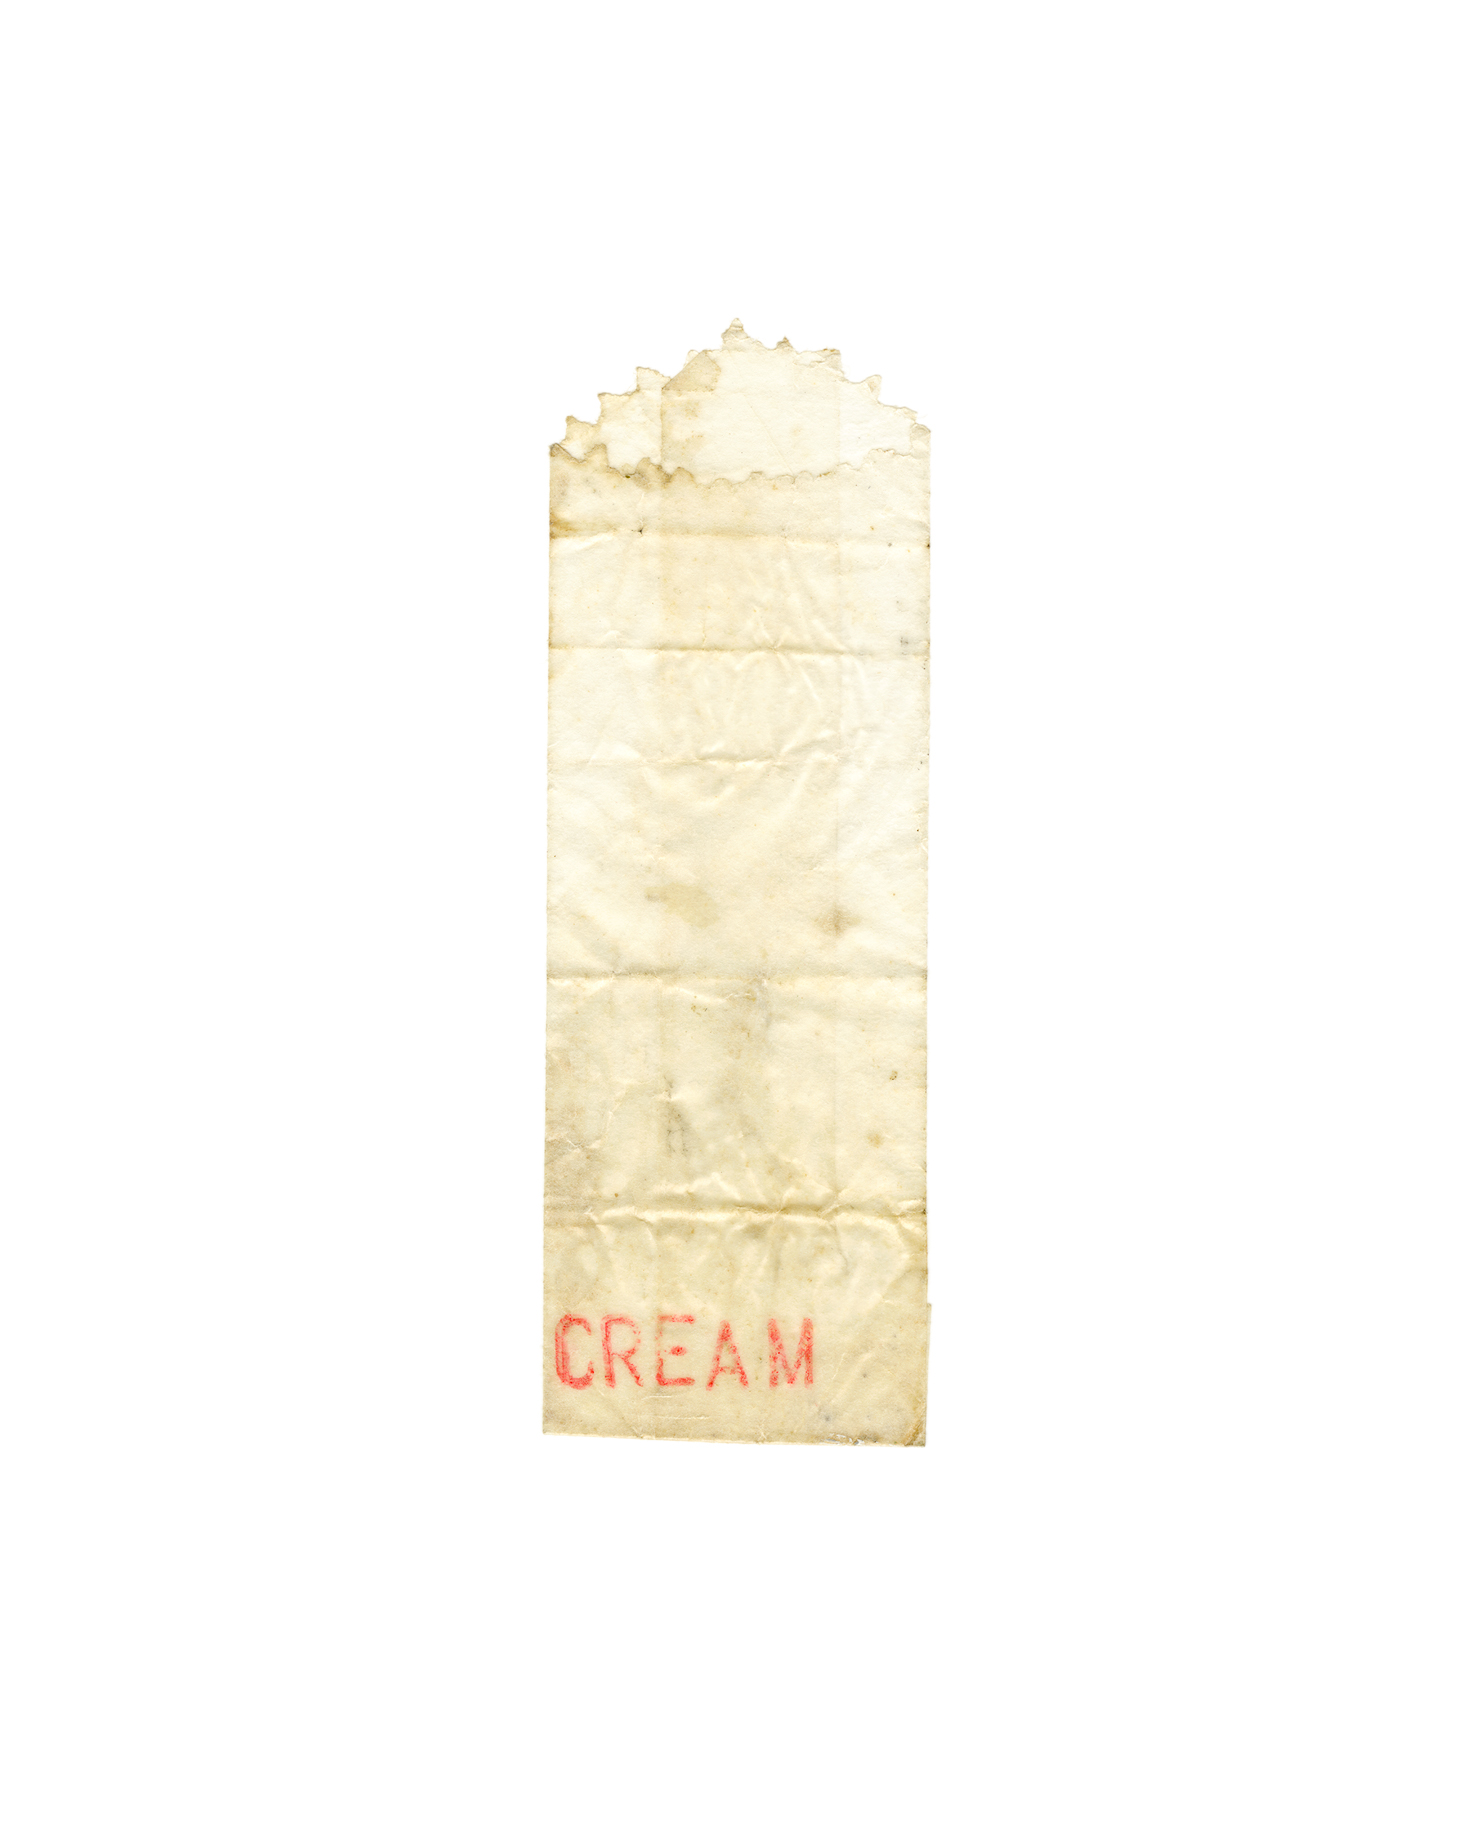 FramedBaggies_031_Cream_8x10__Clean